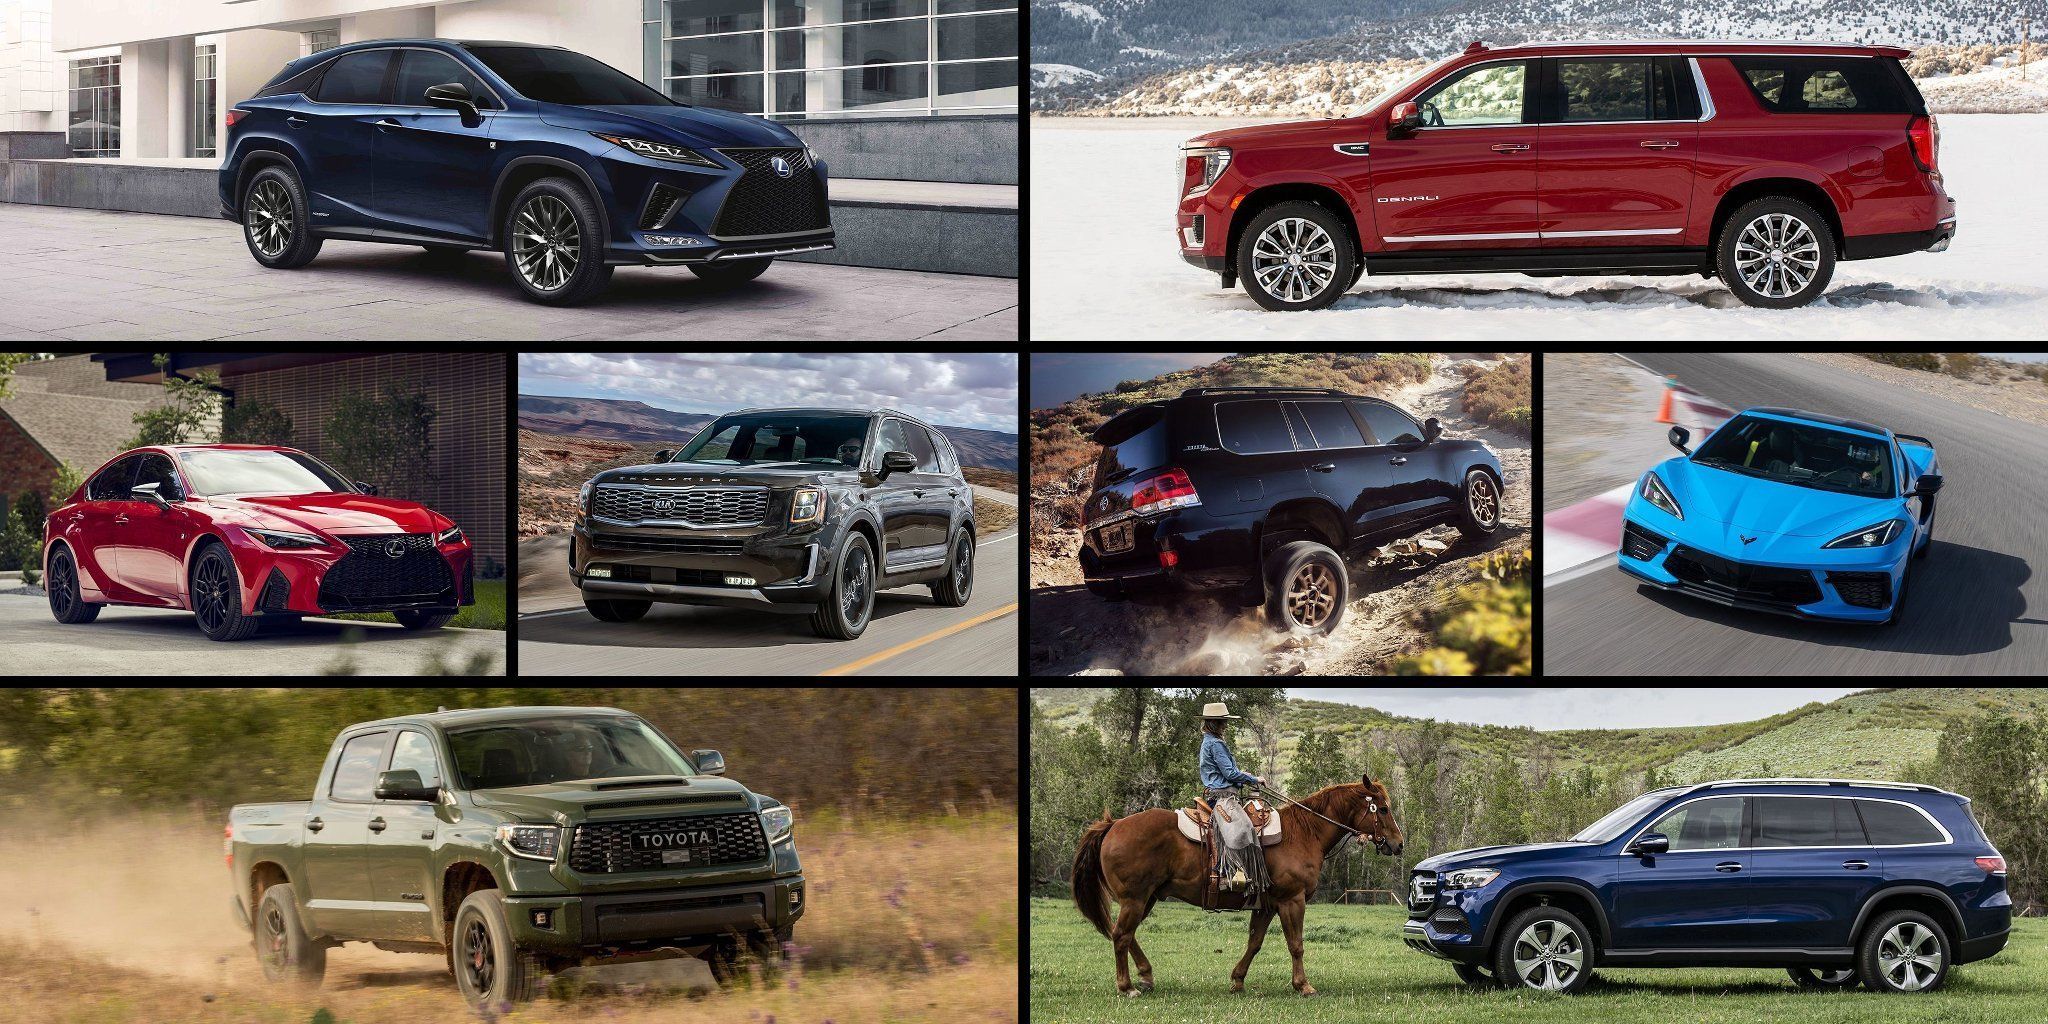 The hottest selling cars right now might surprise you